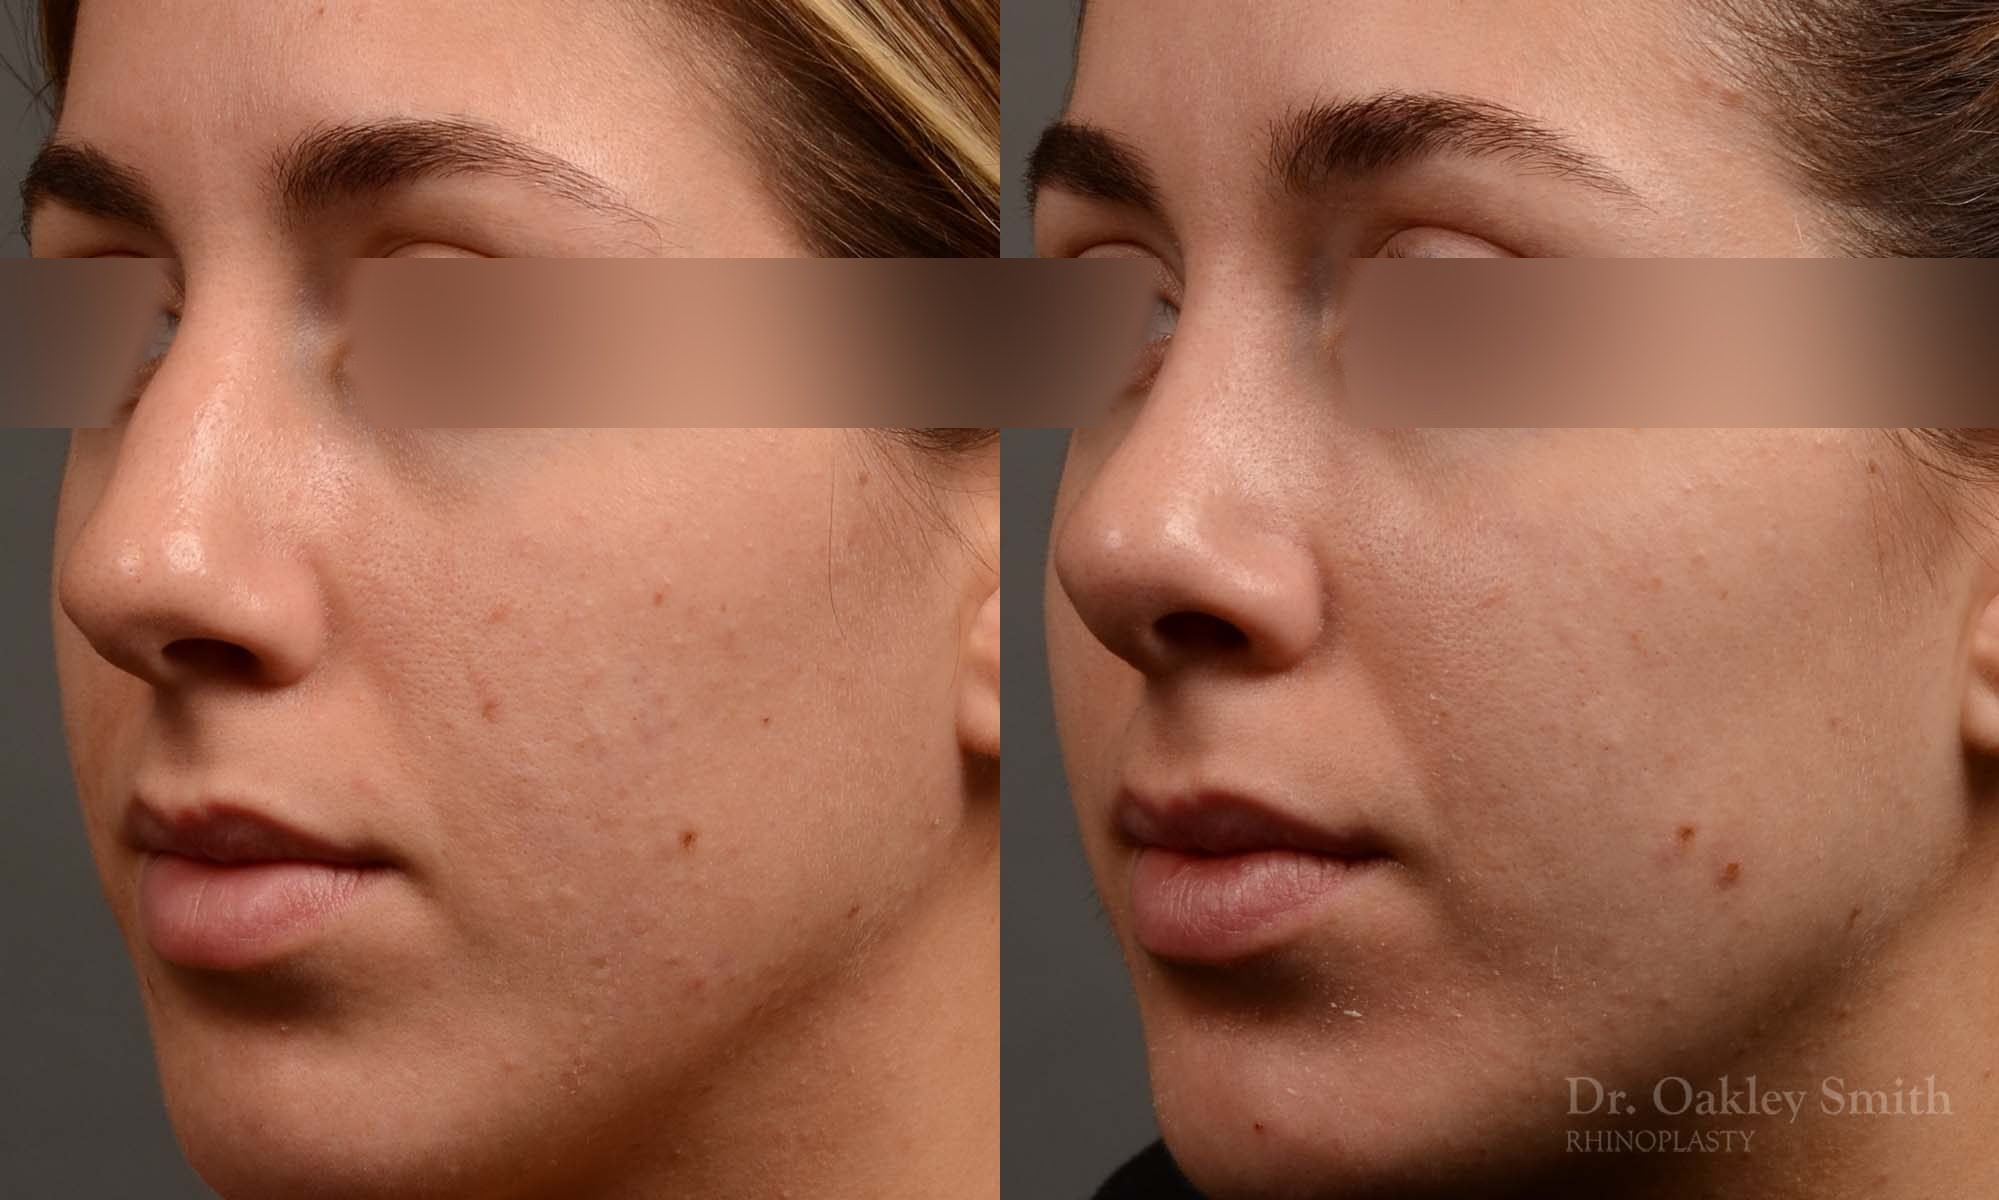 385 - Expert Rhinoplasty nose job surgery to reduce the size of this womans nose.